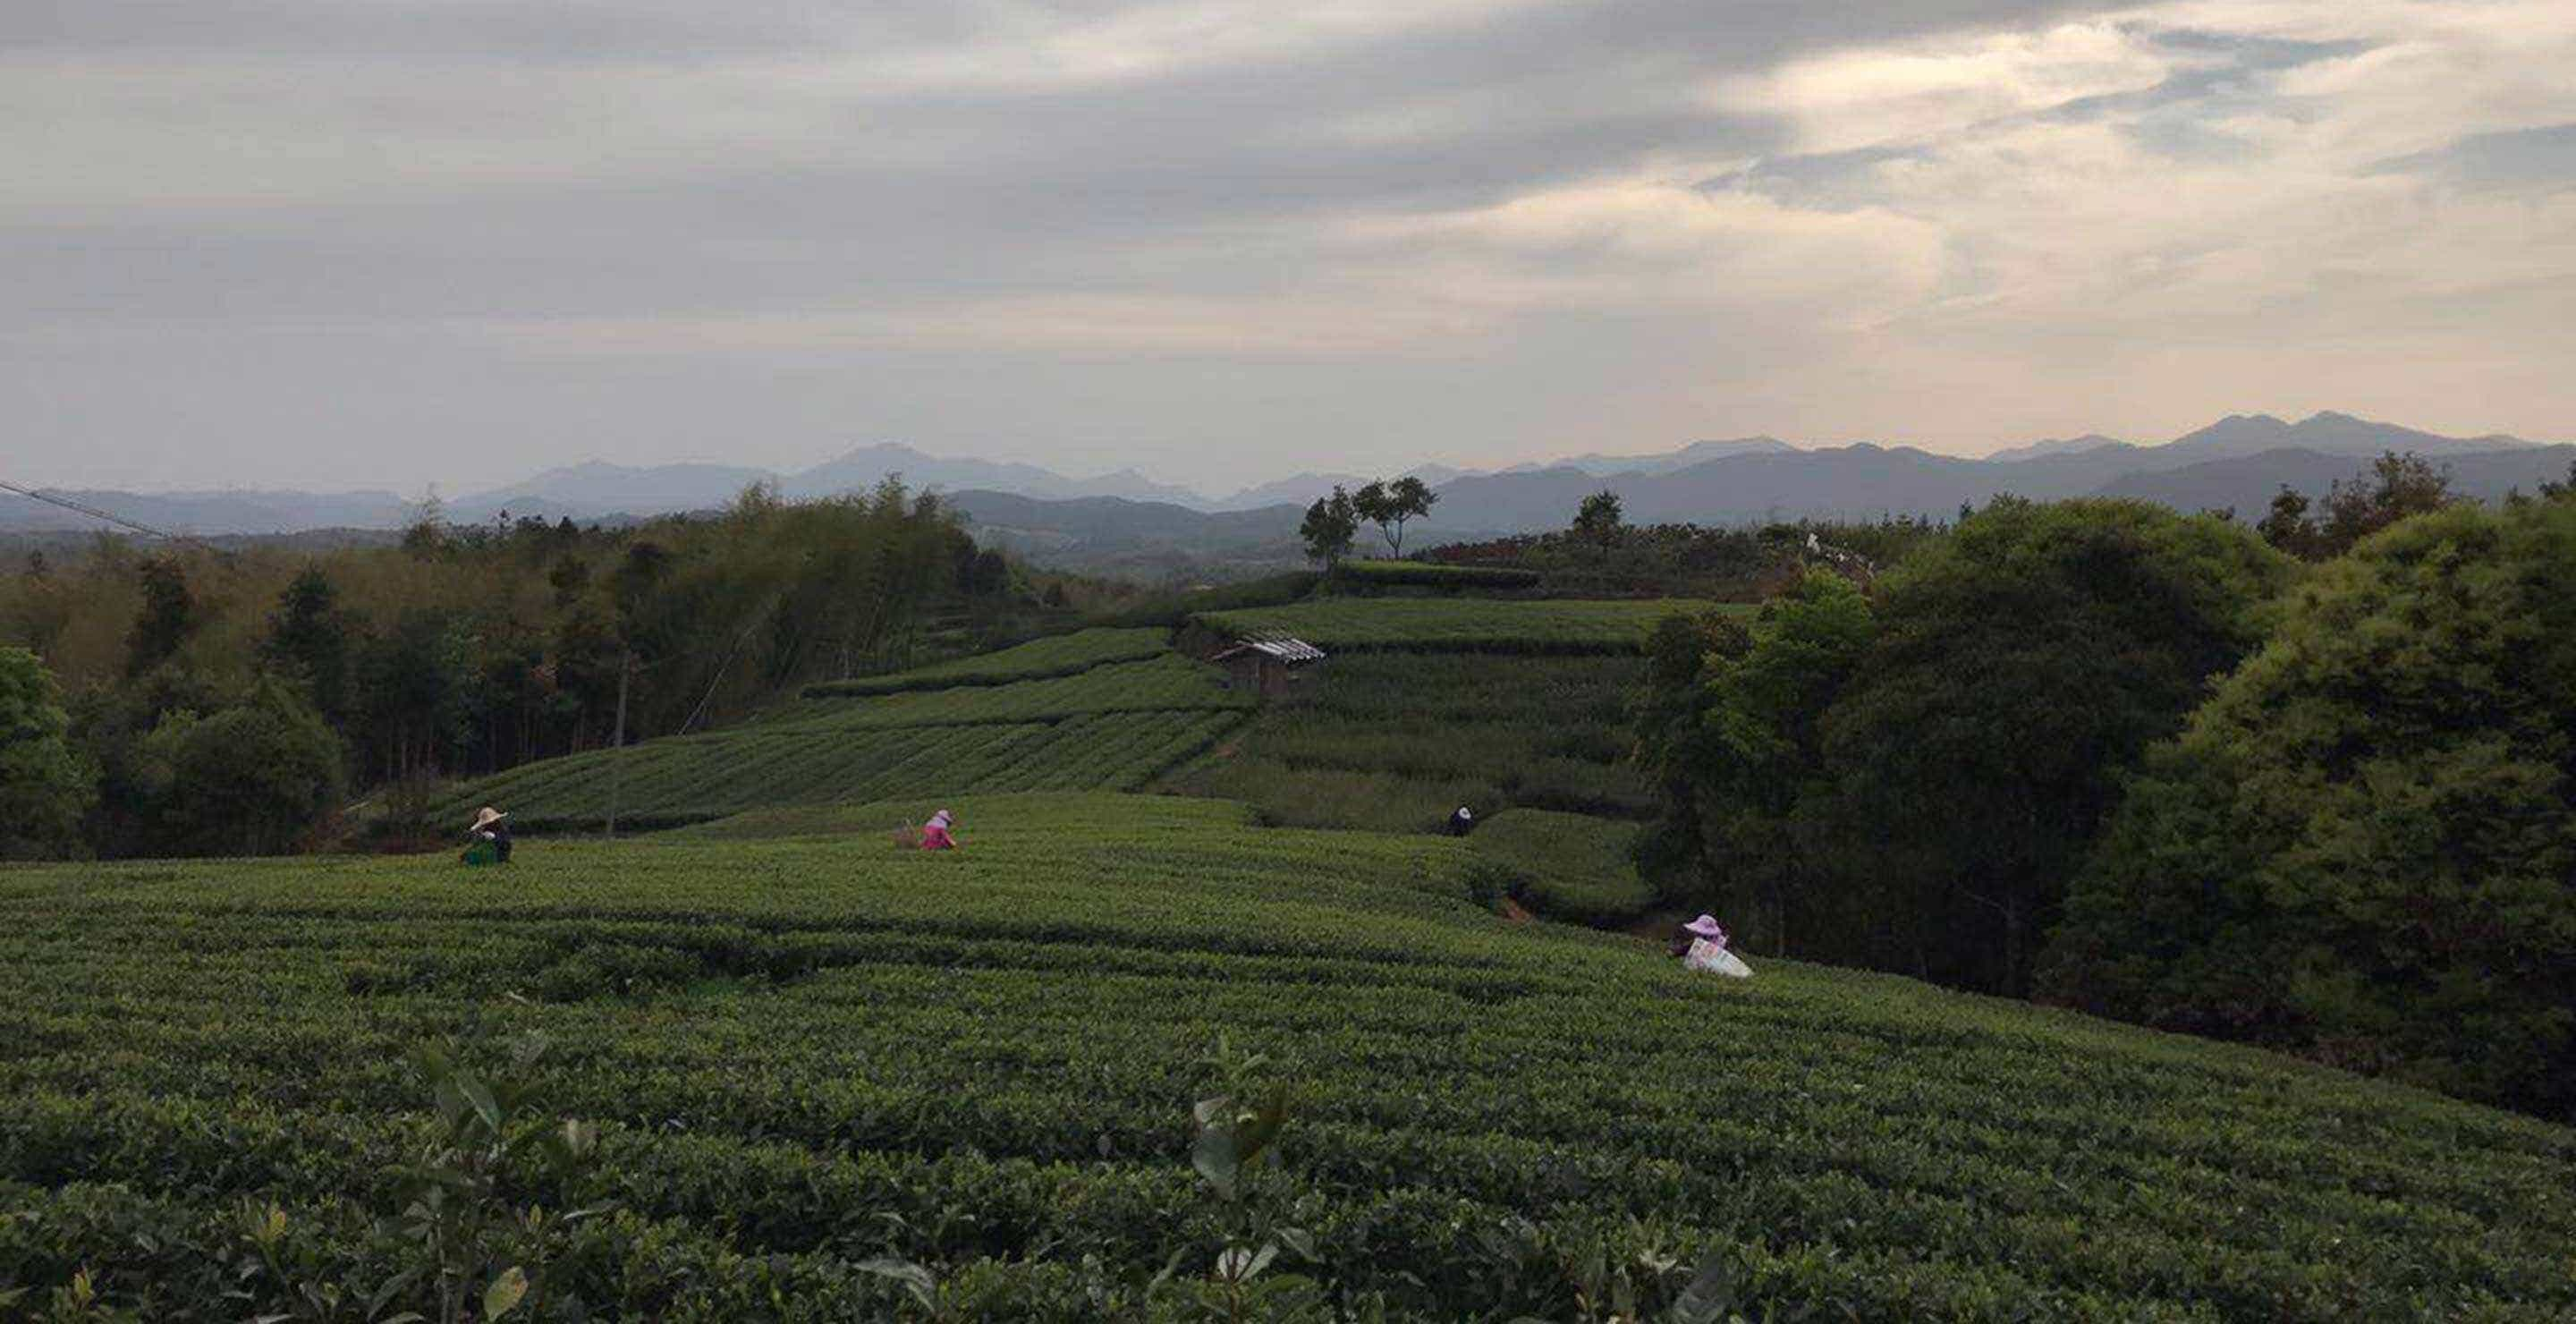 dense trees surround our cultivated tea fields